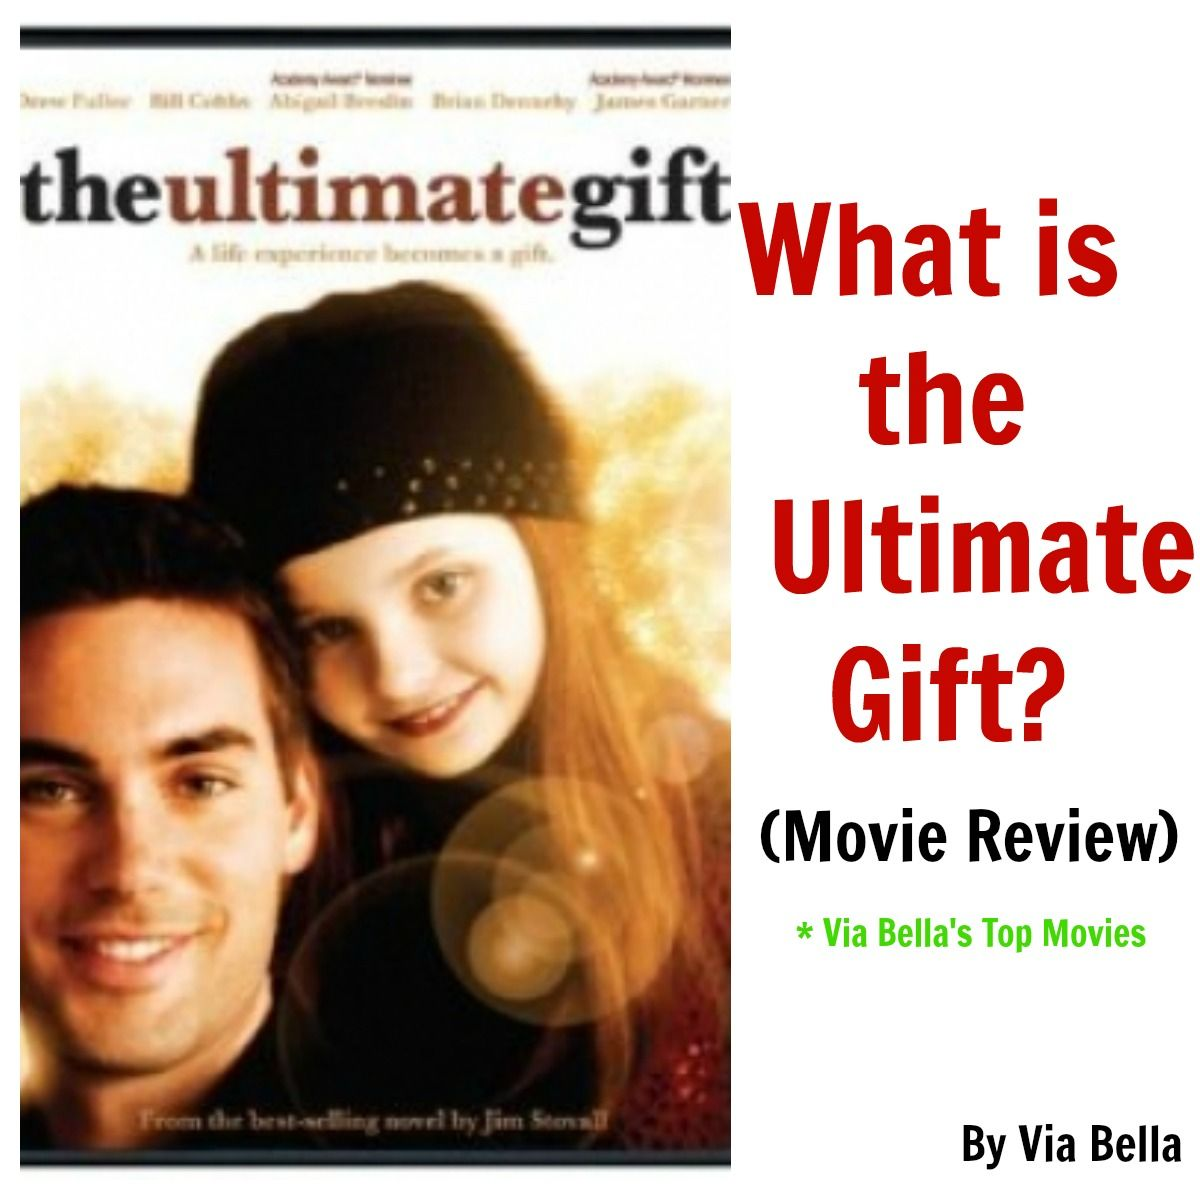 What is the Ultimate Gift? The ultimate gift movie